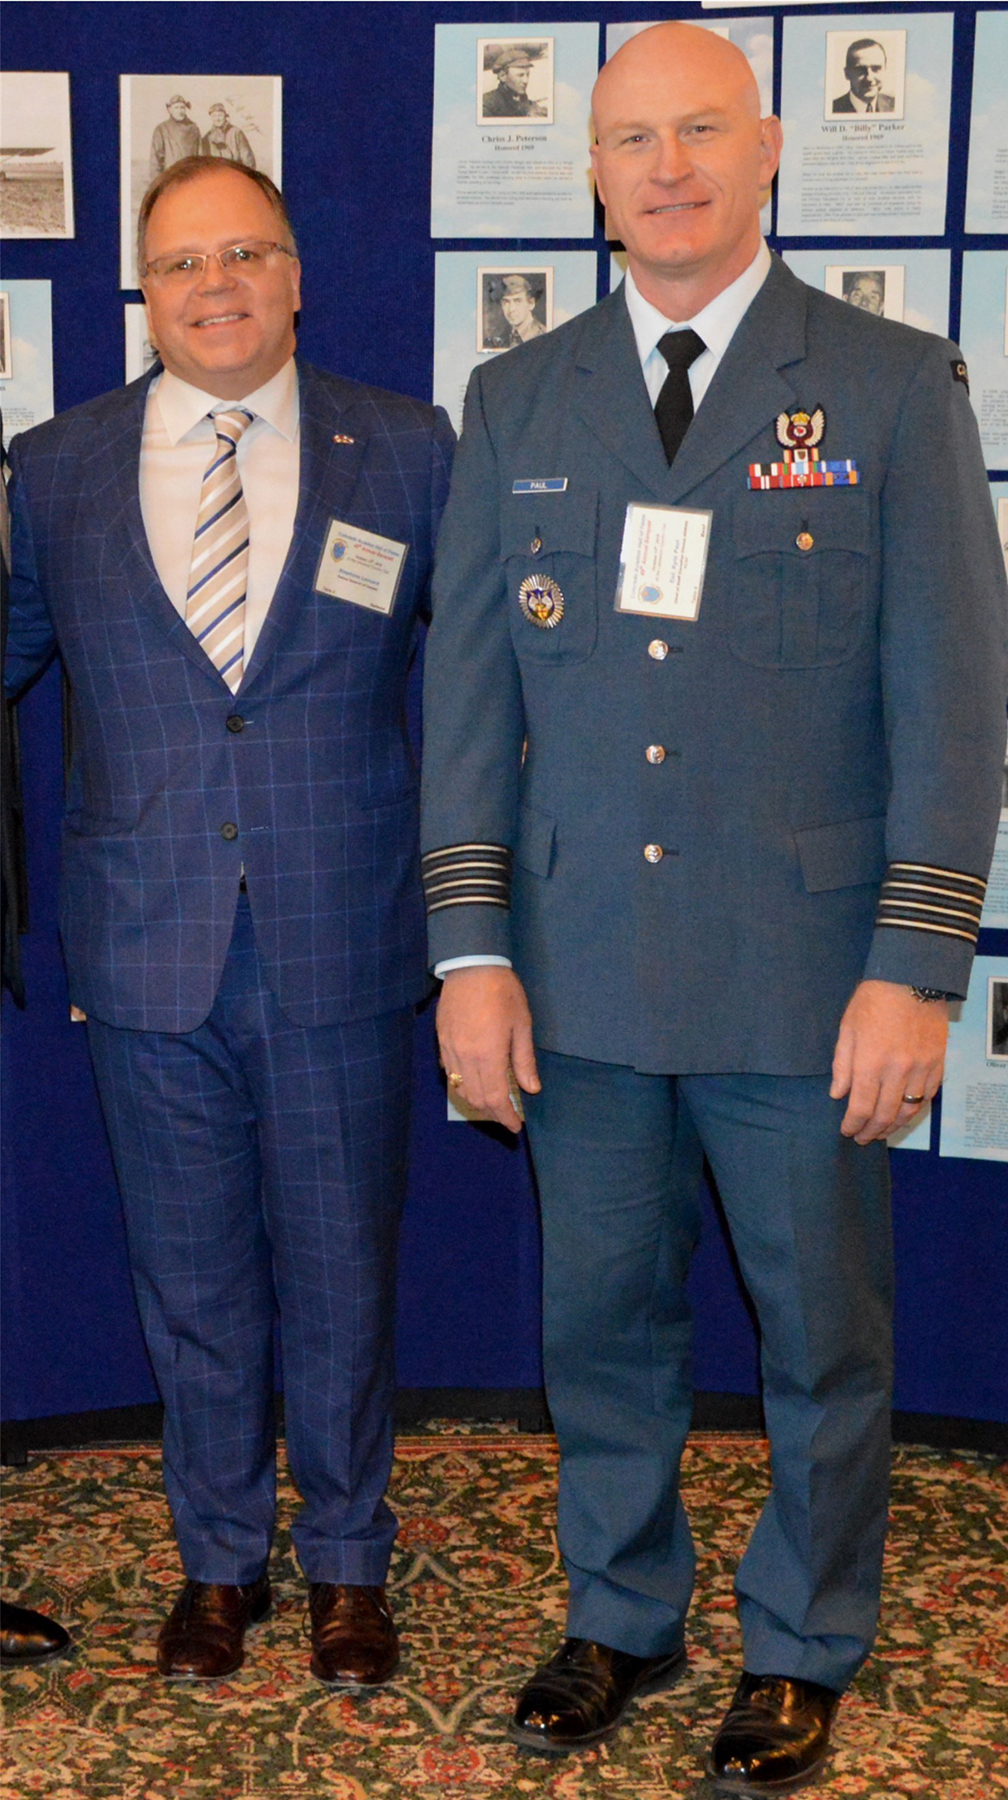 Consul General of Canada Stephane Lessard and RCAF Colonel Kyle Paul at the October 13, 2018, ceremony inducting Ralph Hendricks into the Colorado Aviation Hall of Fame. PHOTO: Submitted